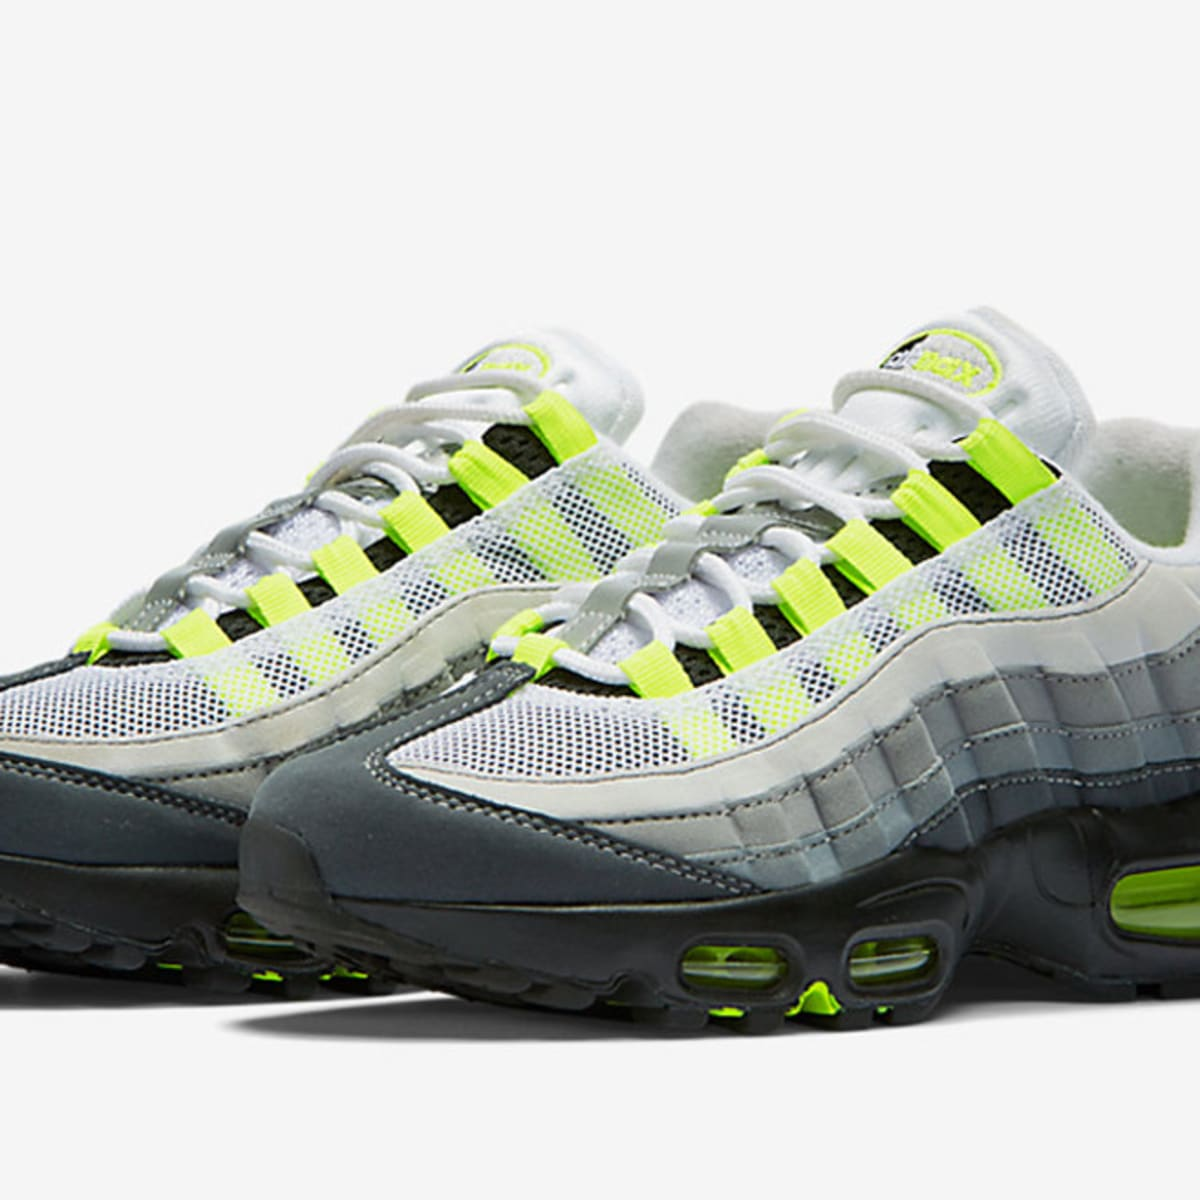 The Nike Air Max 95 Neon Is Set To Return In Original Form Freshness Mag